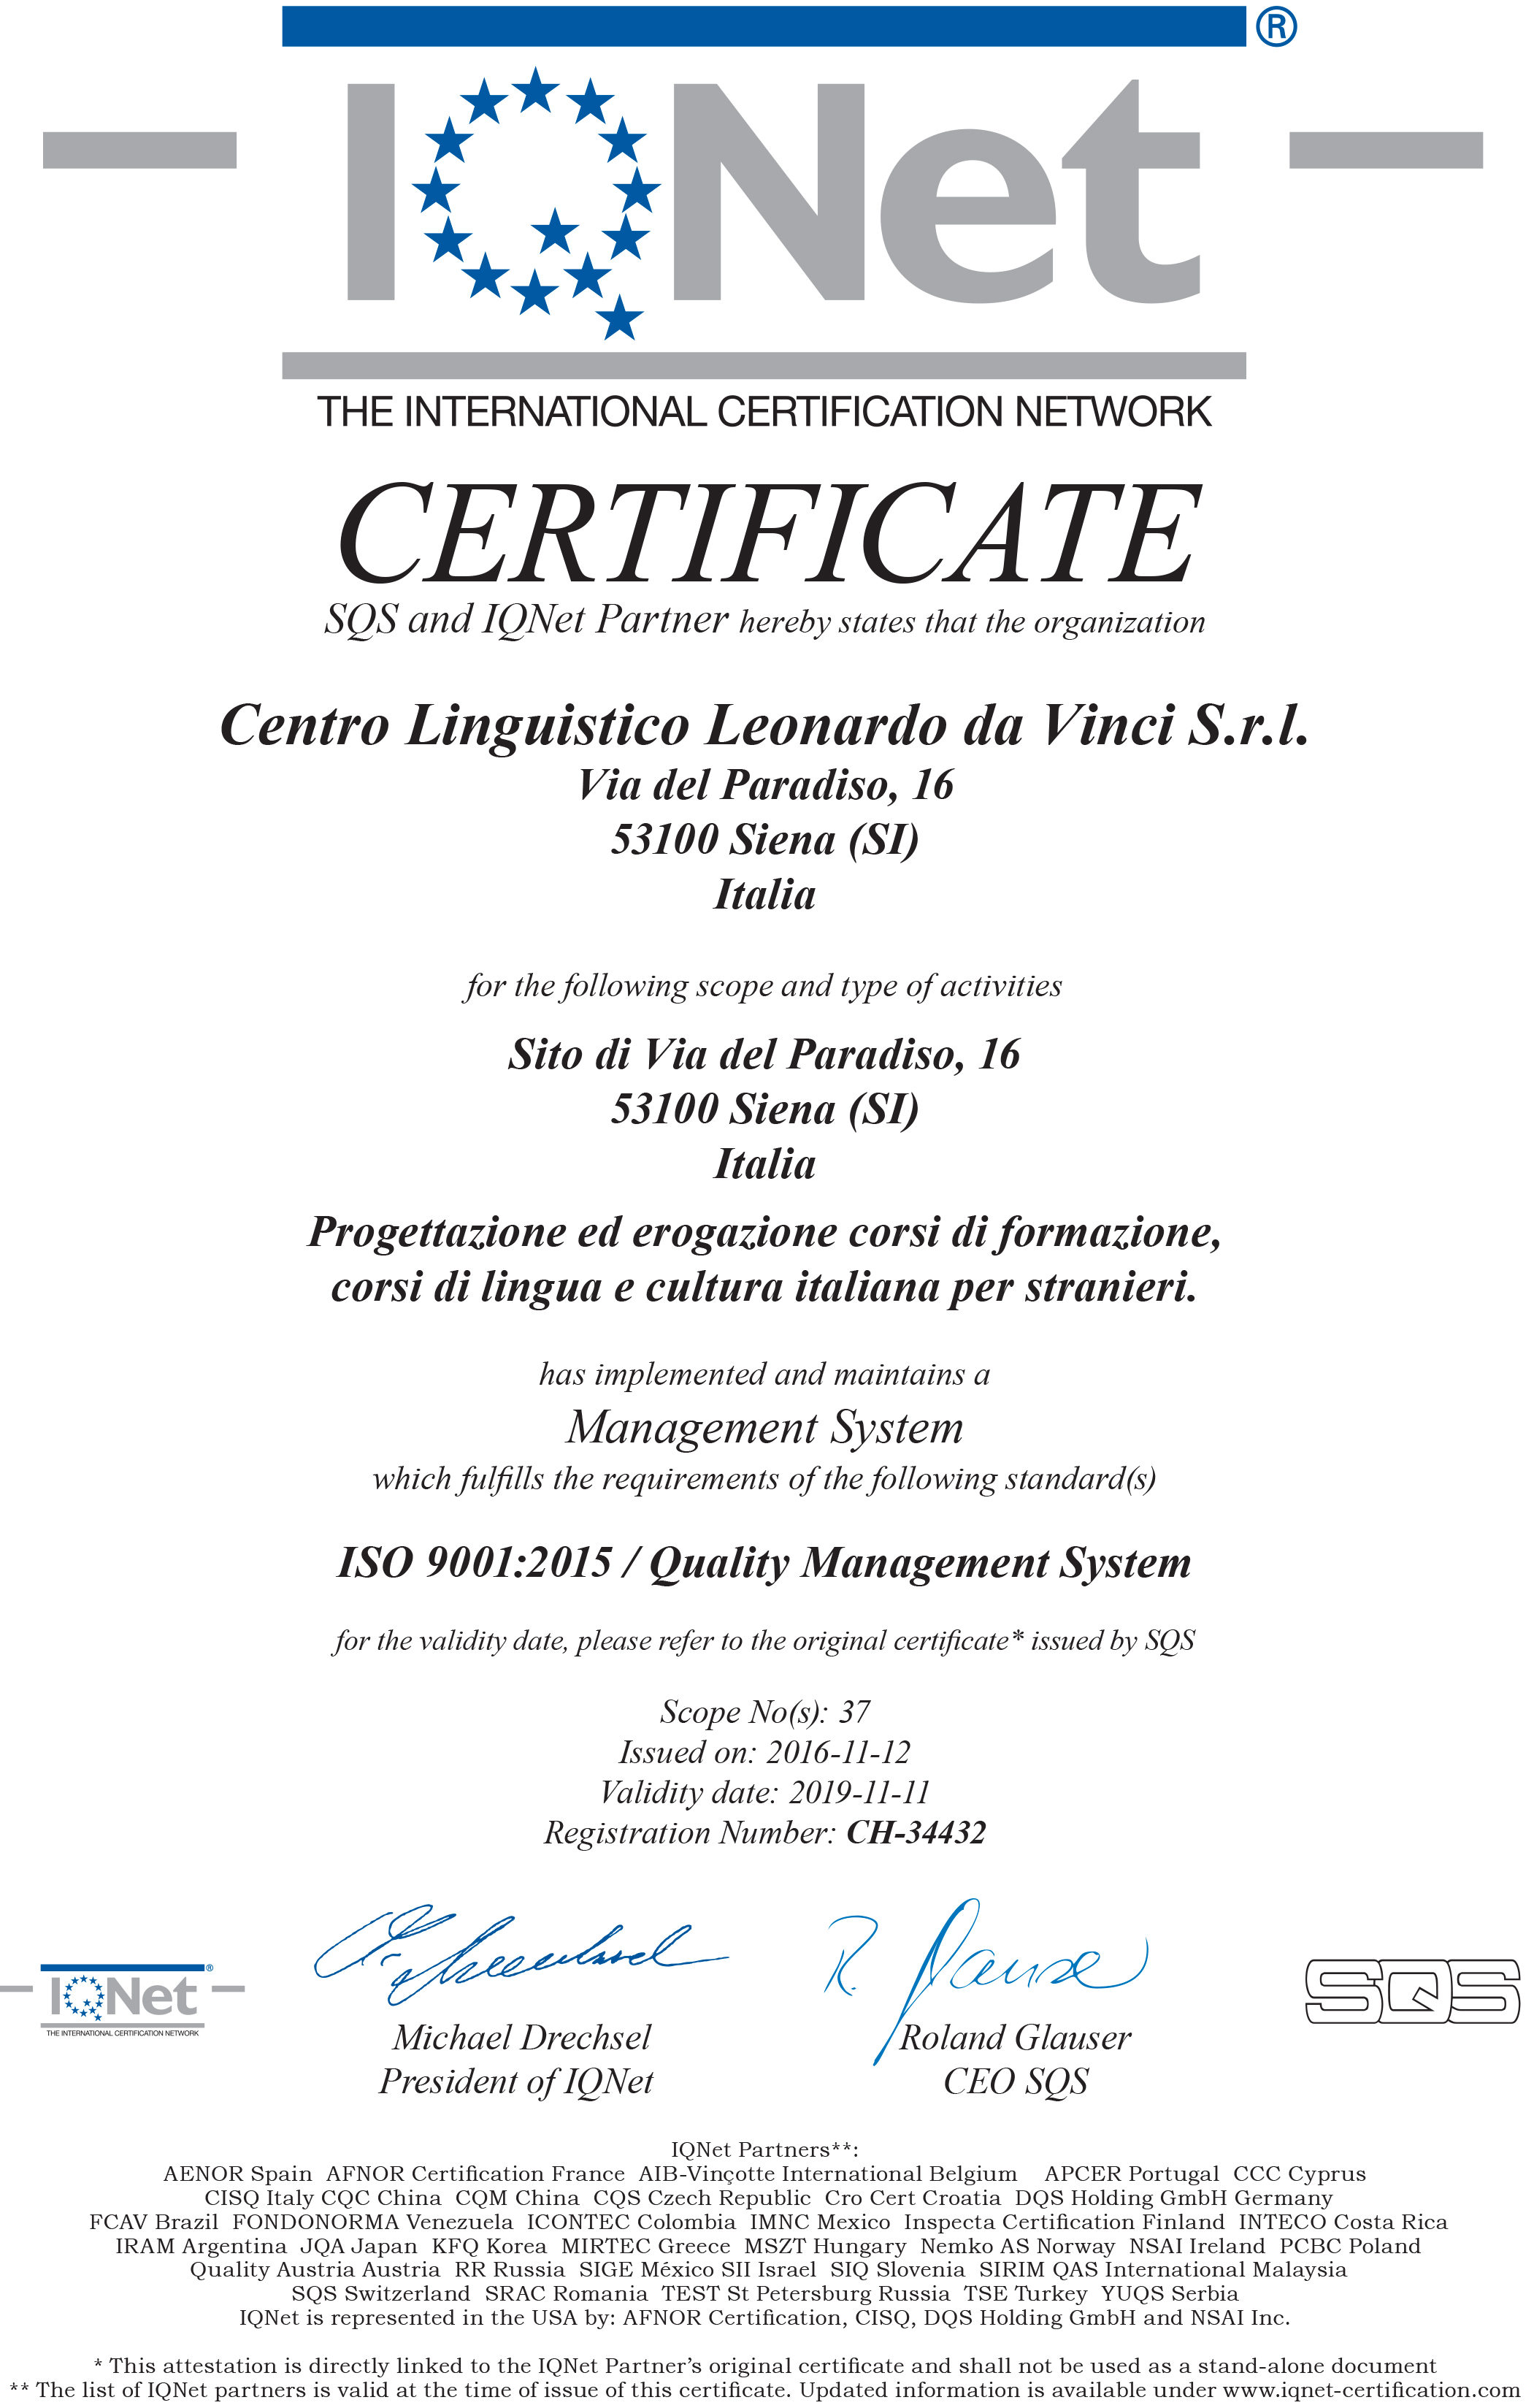 Our Italian school in Siena is certified to meet ISO 9001:2008, the internationally recognized standard for quality management systems